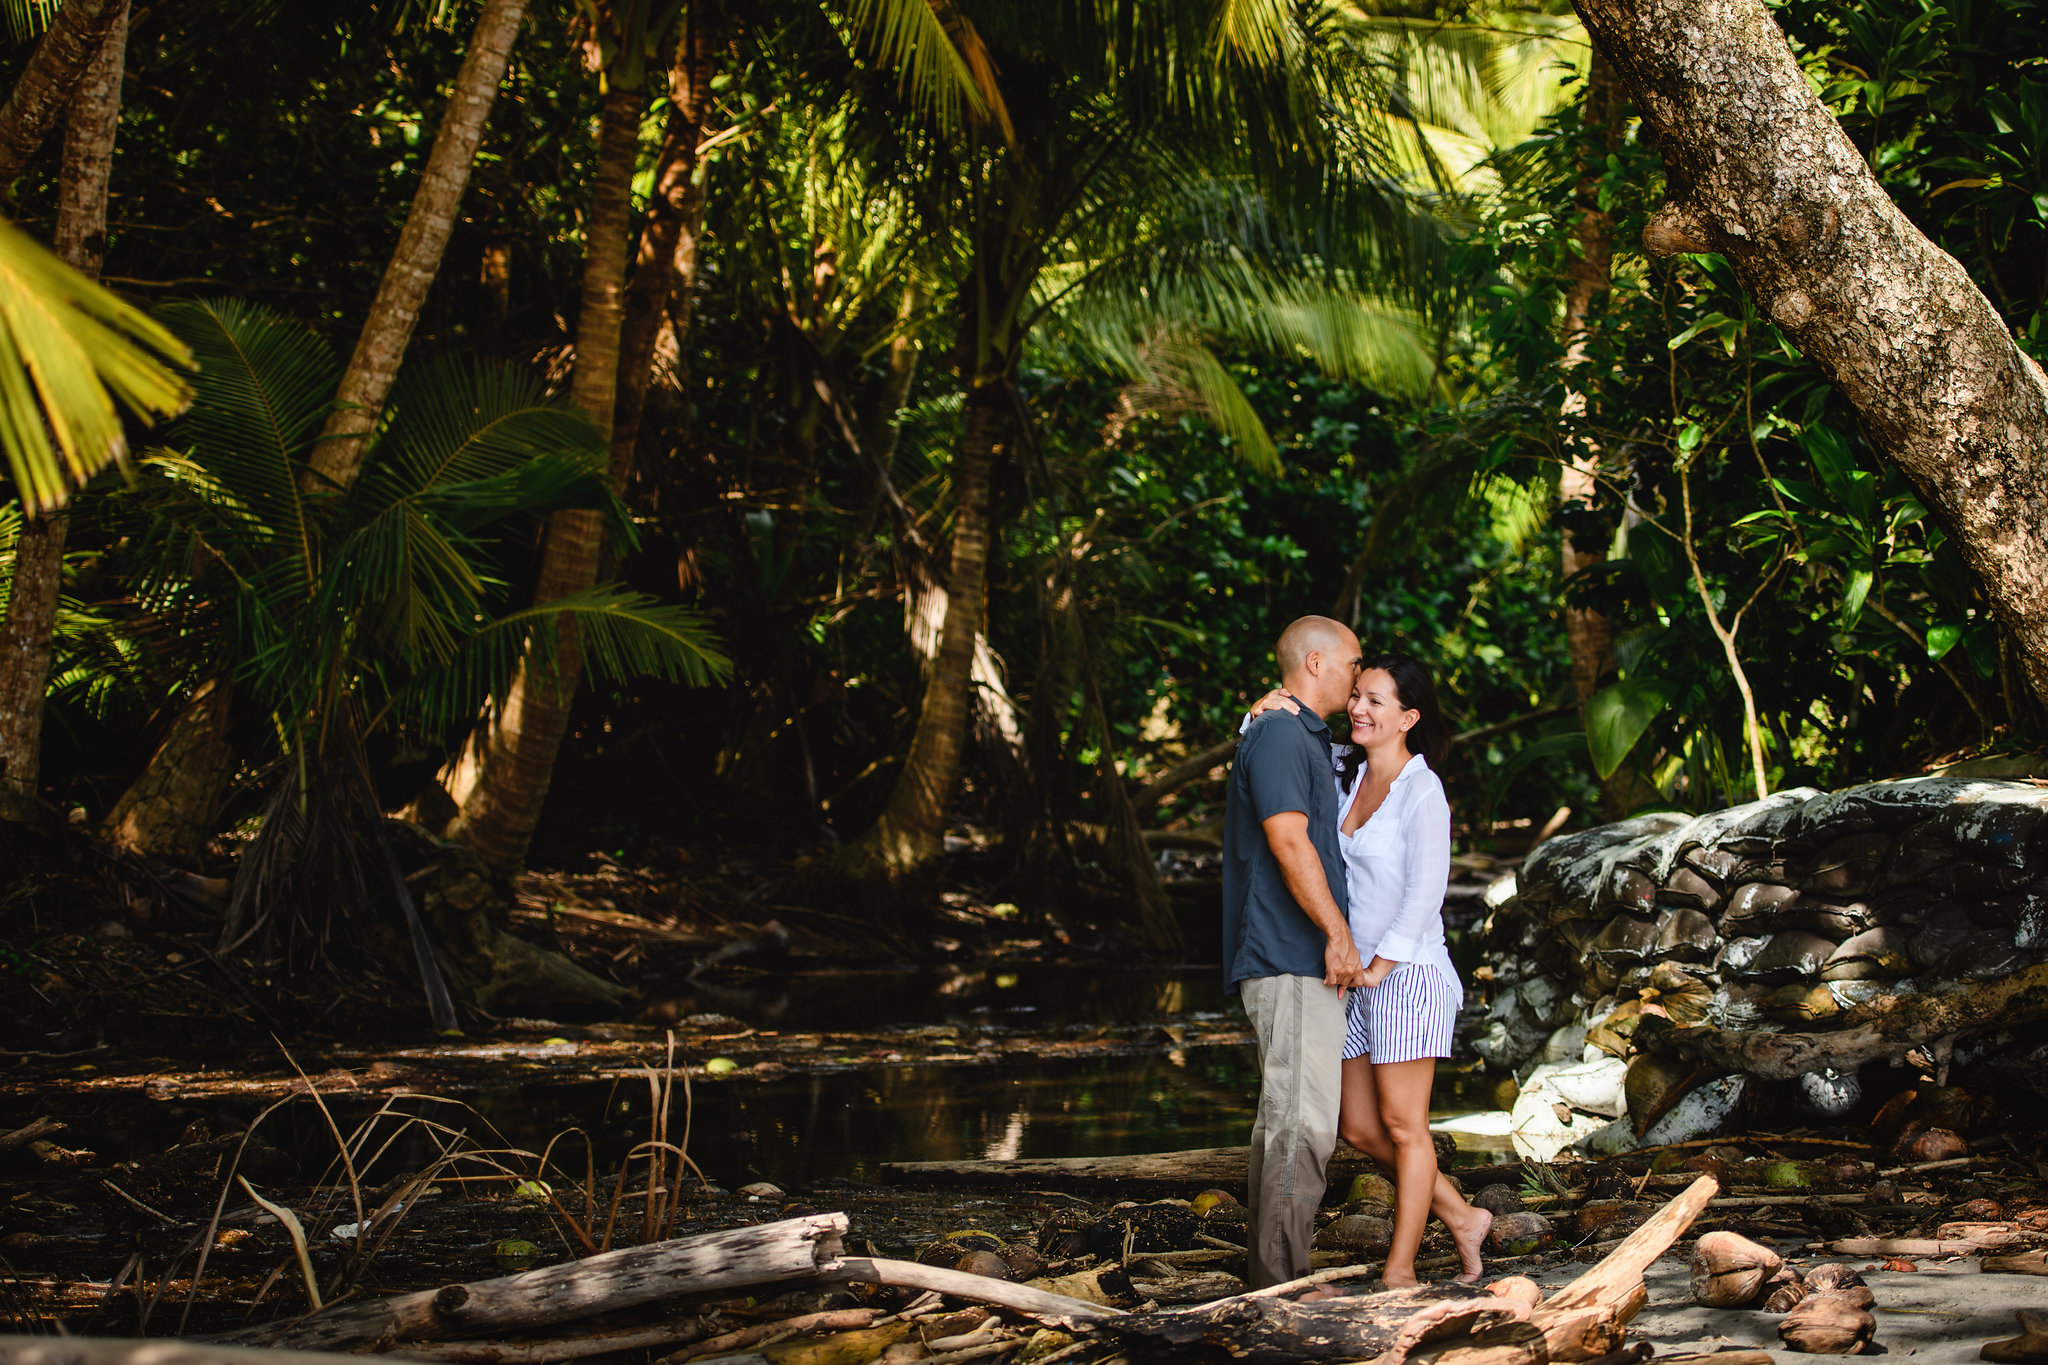 wide angle photo of a couple in a rainforest